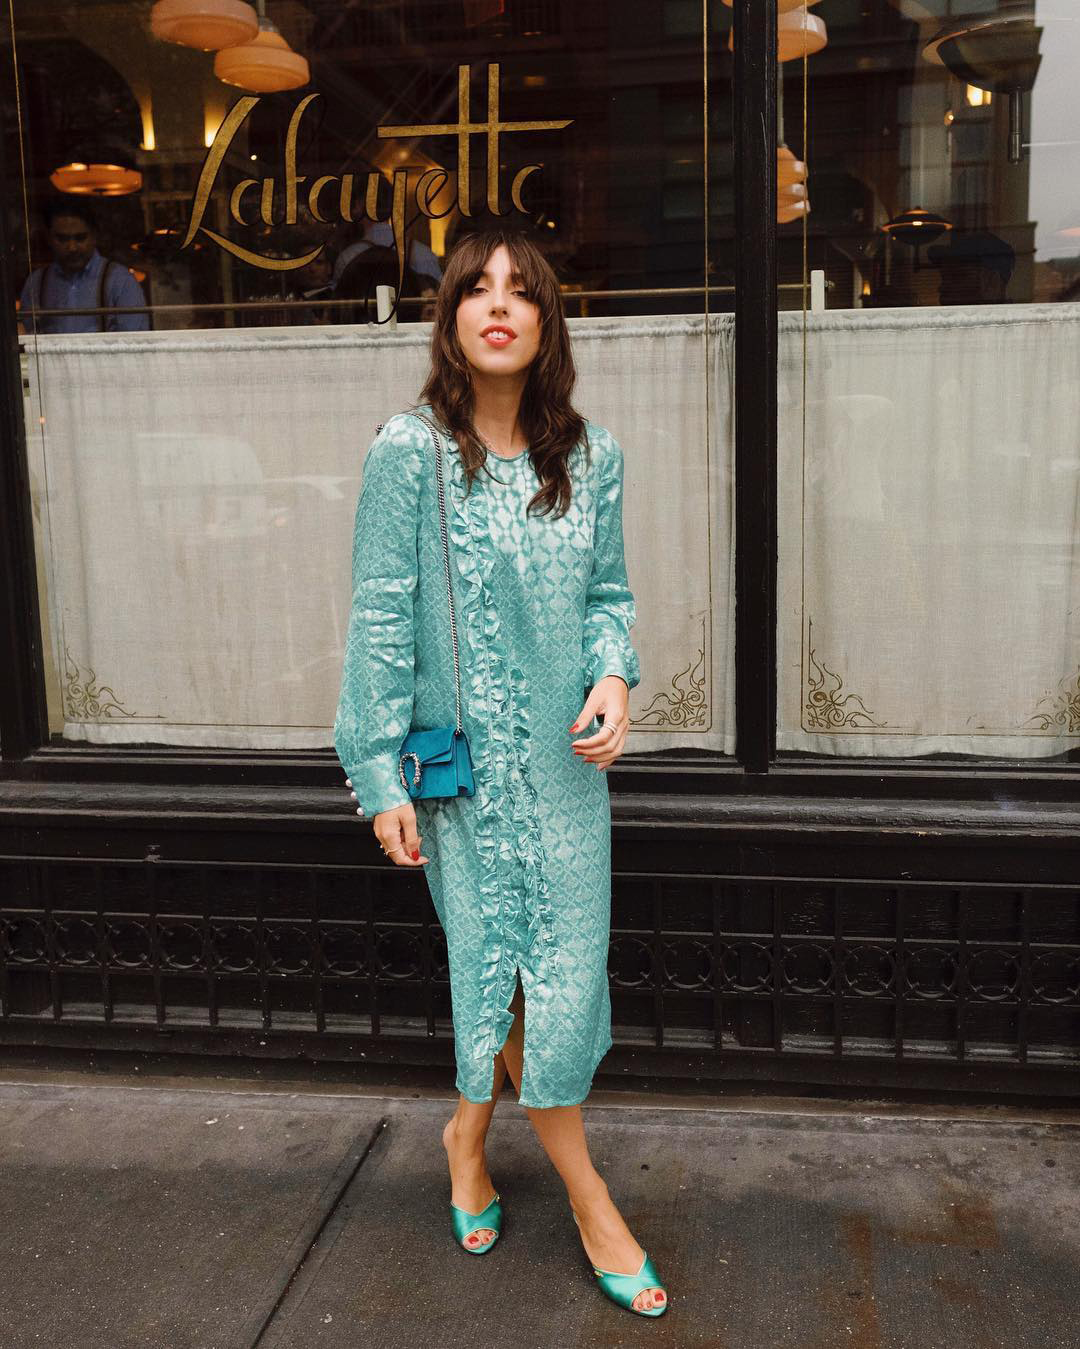 sania claus demina baum und pferdgarten dress gucci velvet turquoise bag new york prada shoes_2